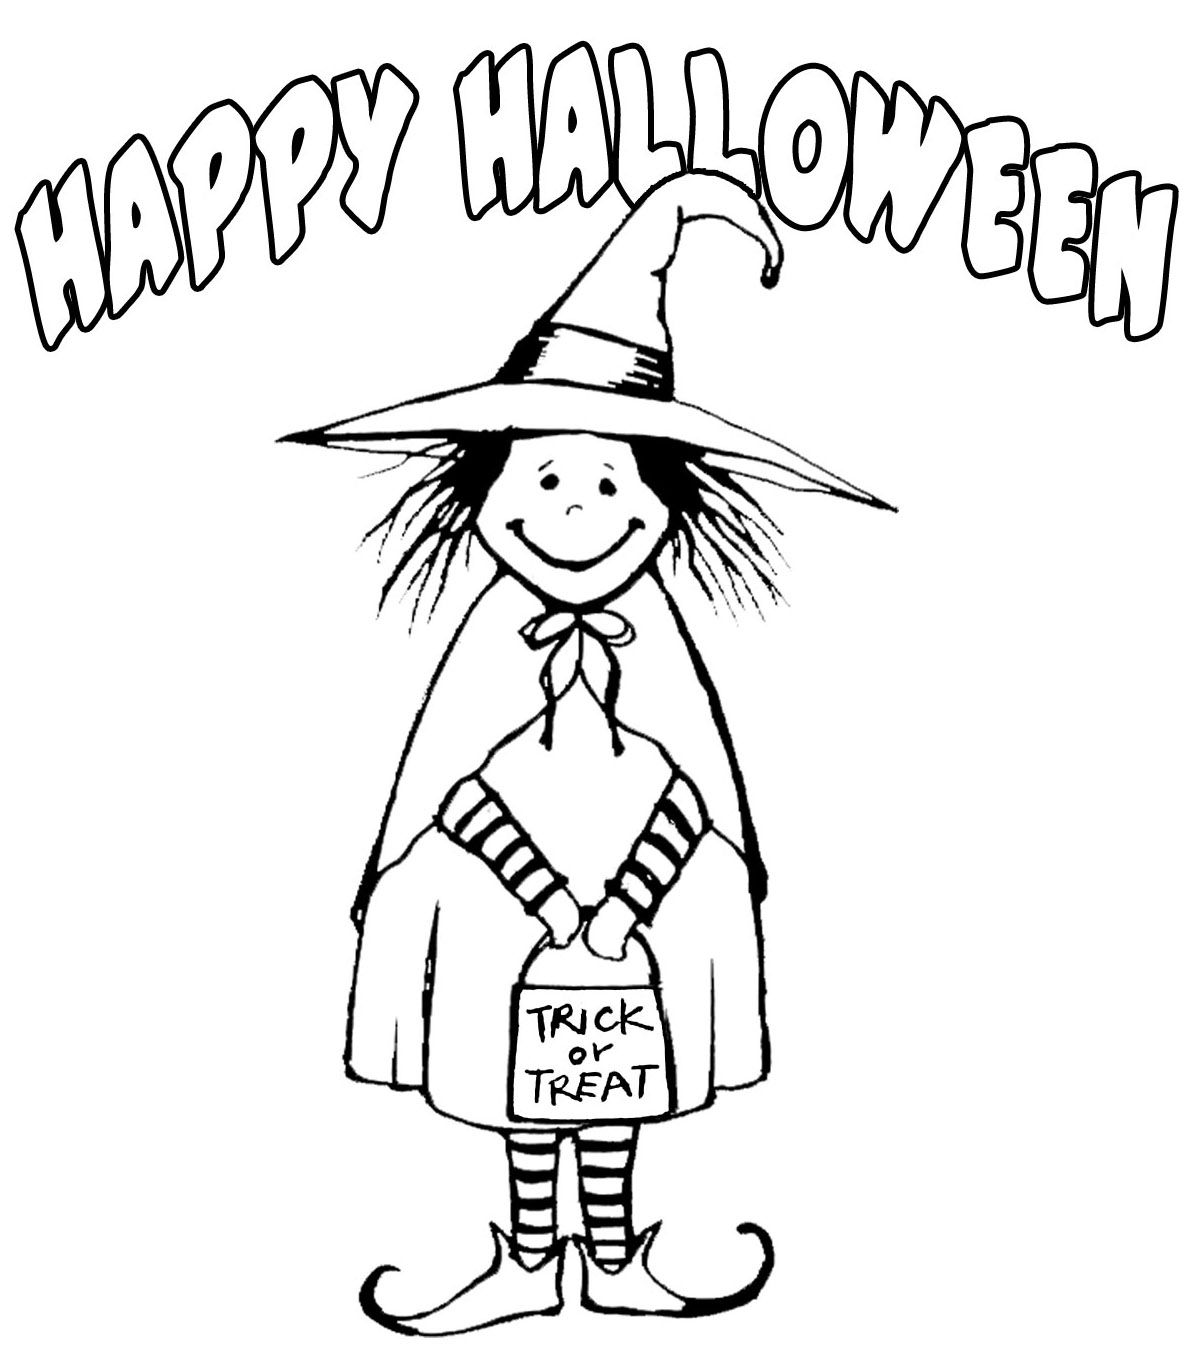 here are two happy halloween signs for you to print and colour in and perhaps - Pictures Of Witches To Colour In